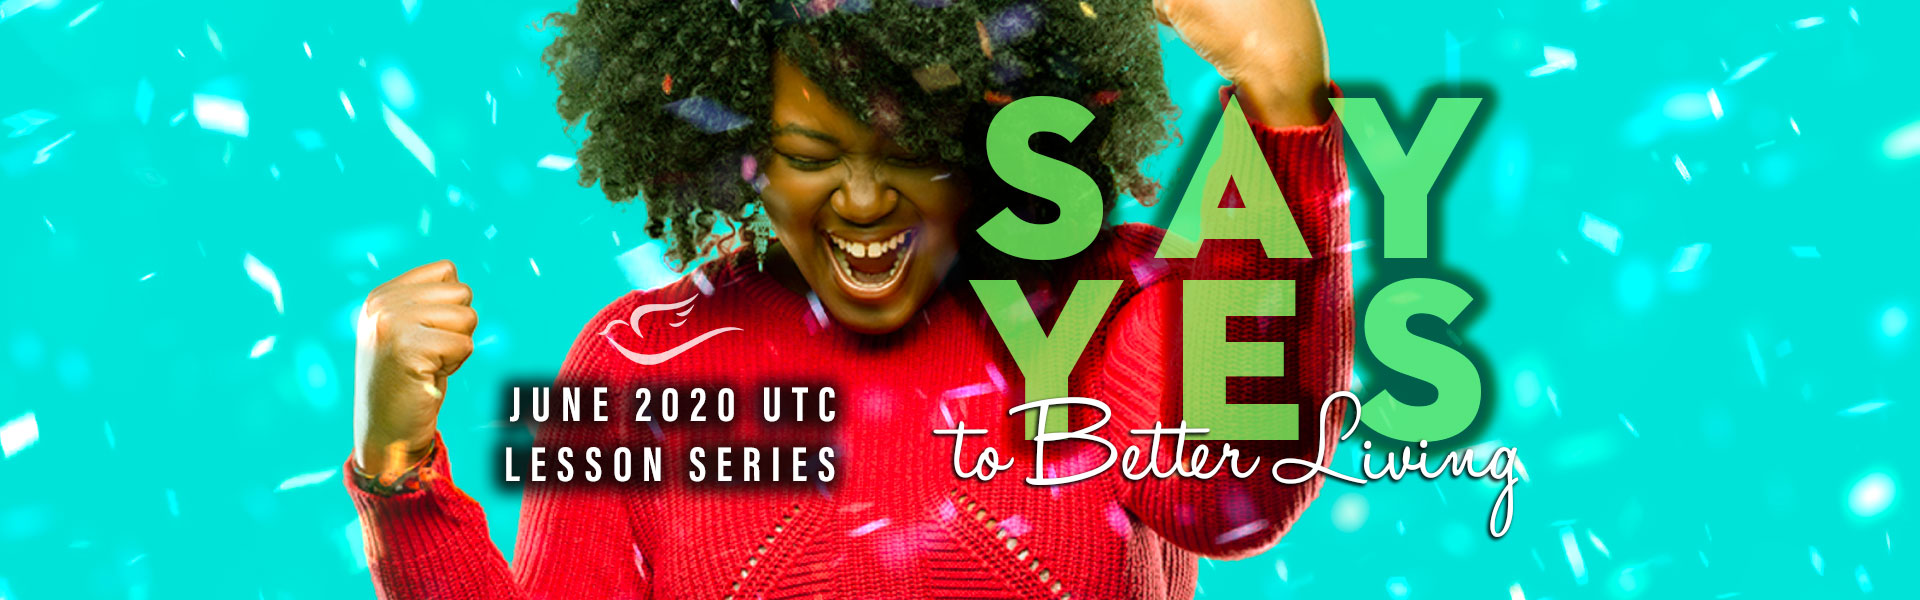 Say Yes to Better Living in June 2020 banner